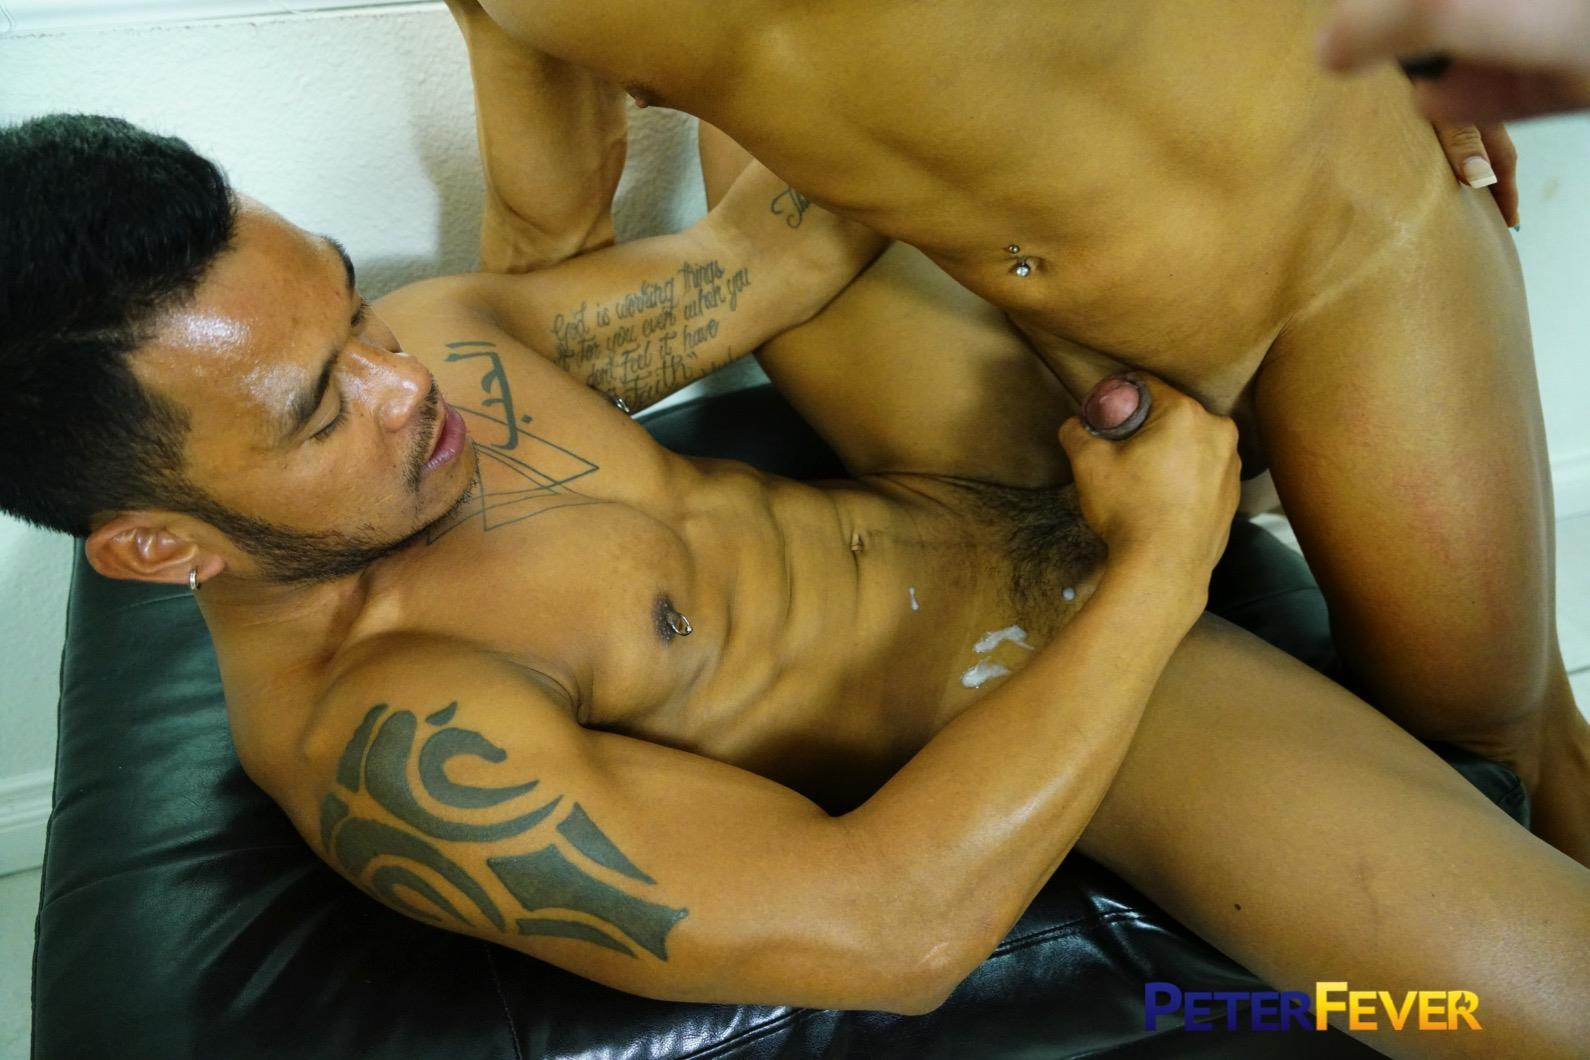 Peter-Fever-Shen-Powers-and-Trevor-Northman-Big-Asian-Dicks-Fucking-12 Horny Asian Guys Tickle, Suck And Fuck Each Other Silly